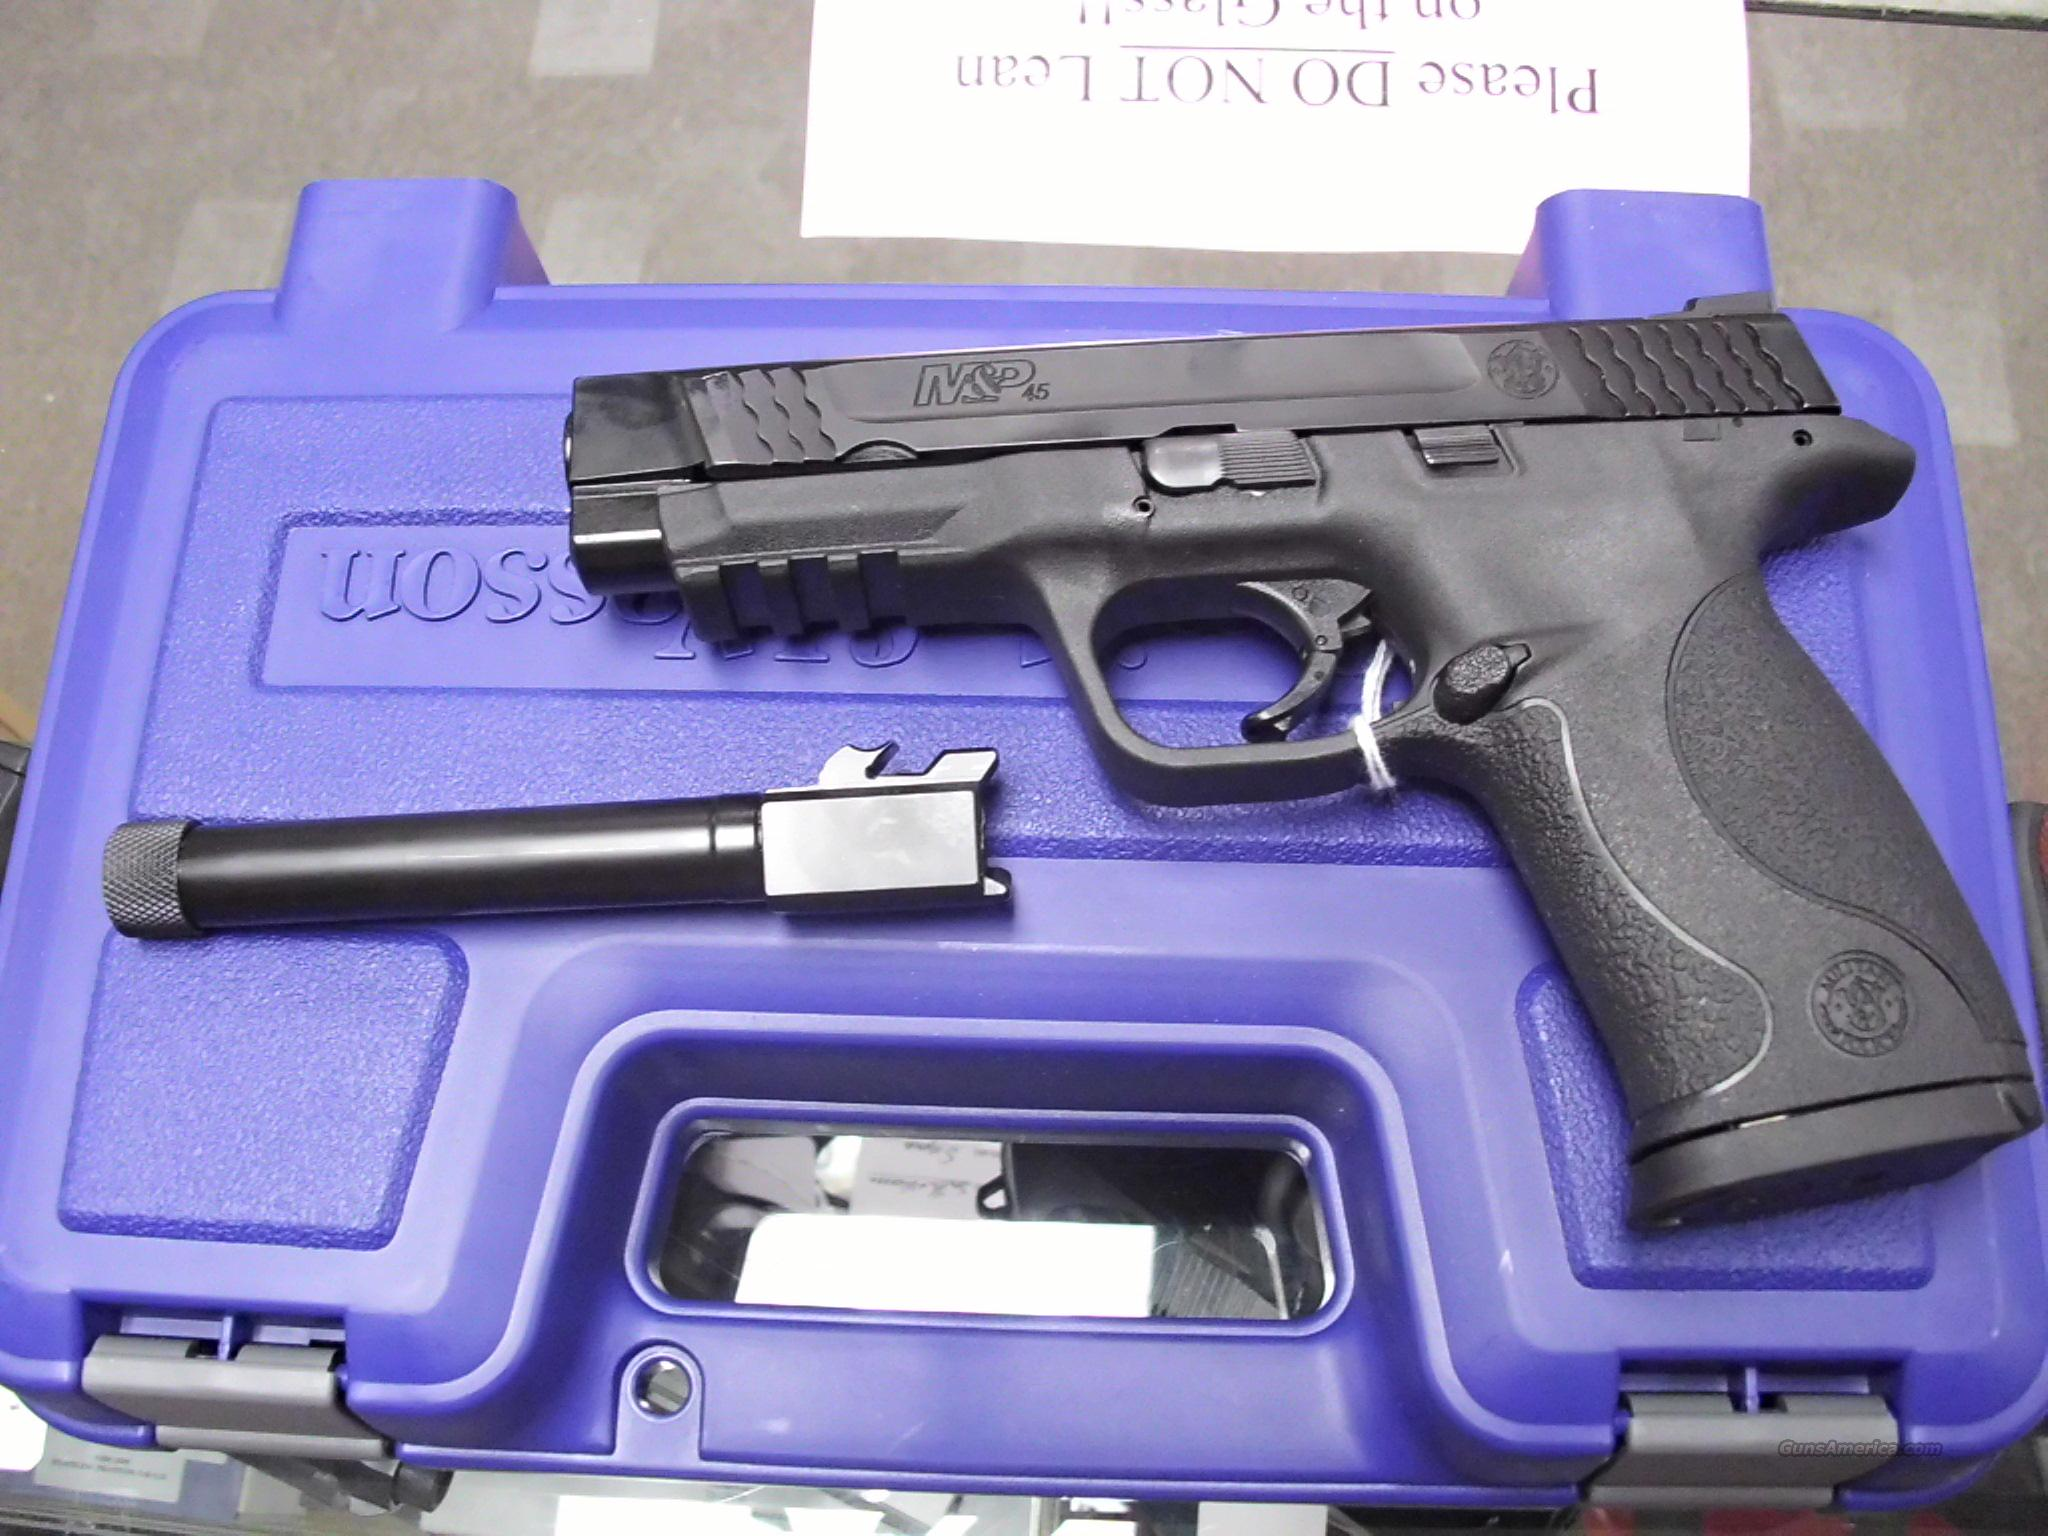 Smith & Wesson M&P 45 Threaded Barrel 45ACP NEW   Guns > Pistols > Smith & Wesson Pistols - Autos > Polymer Frame